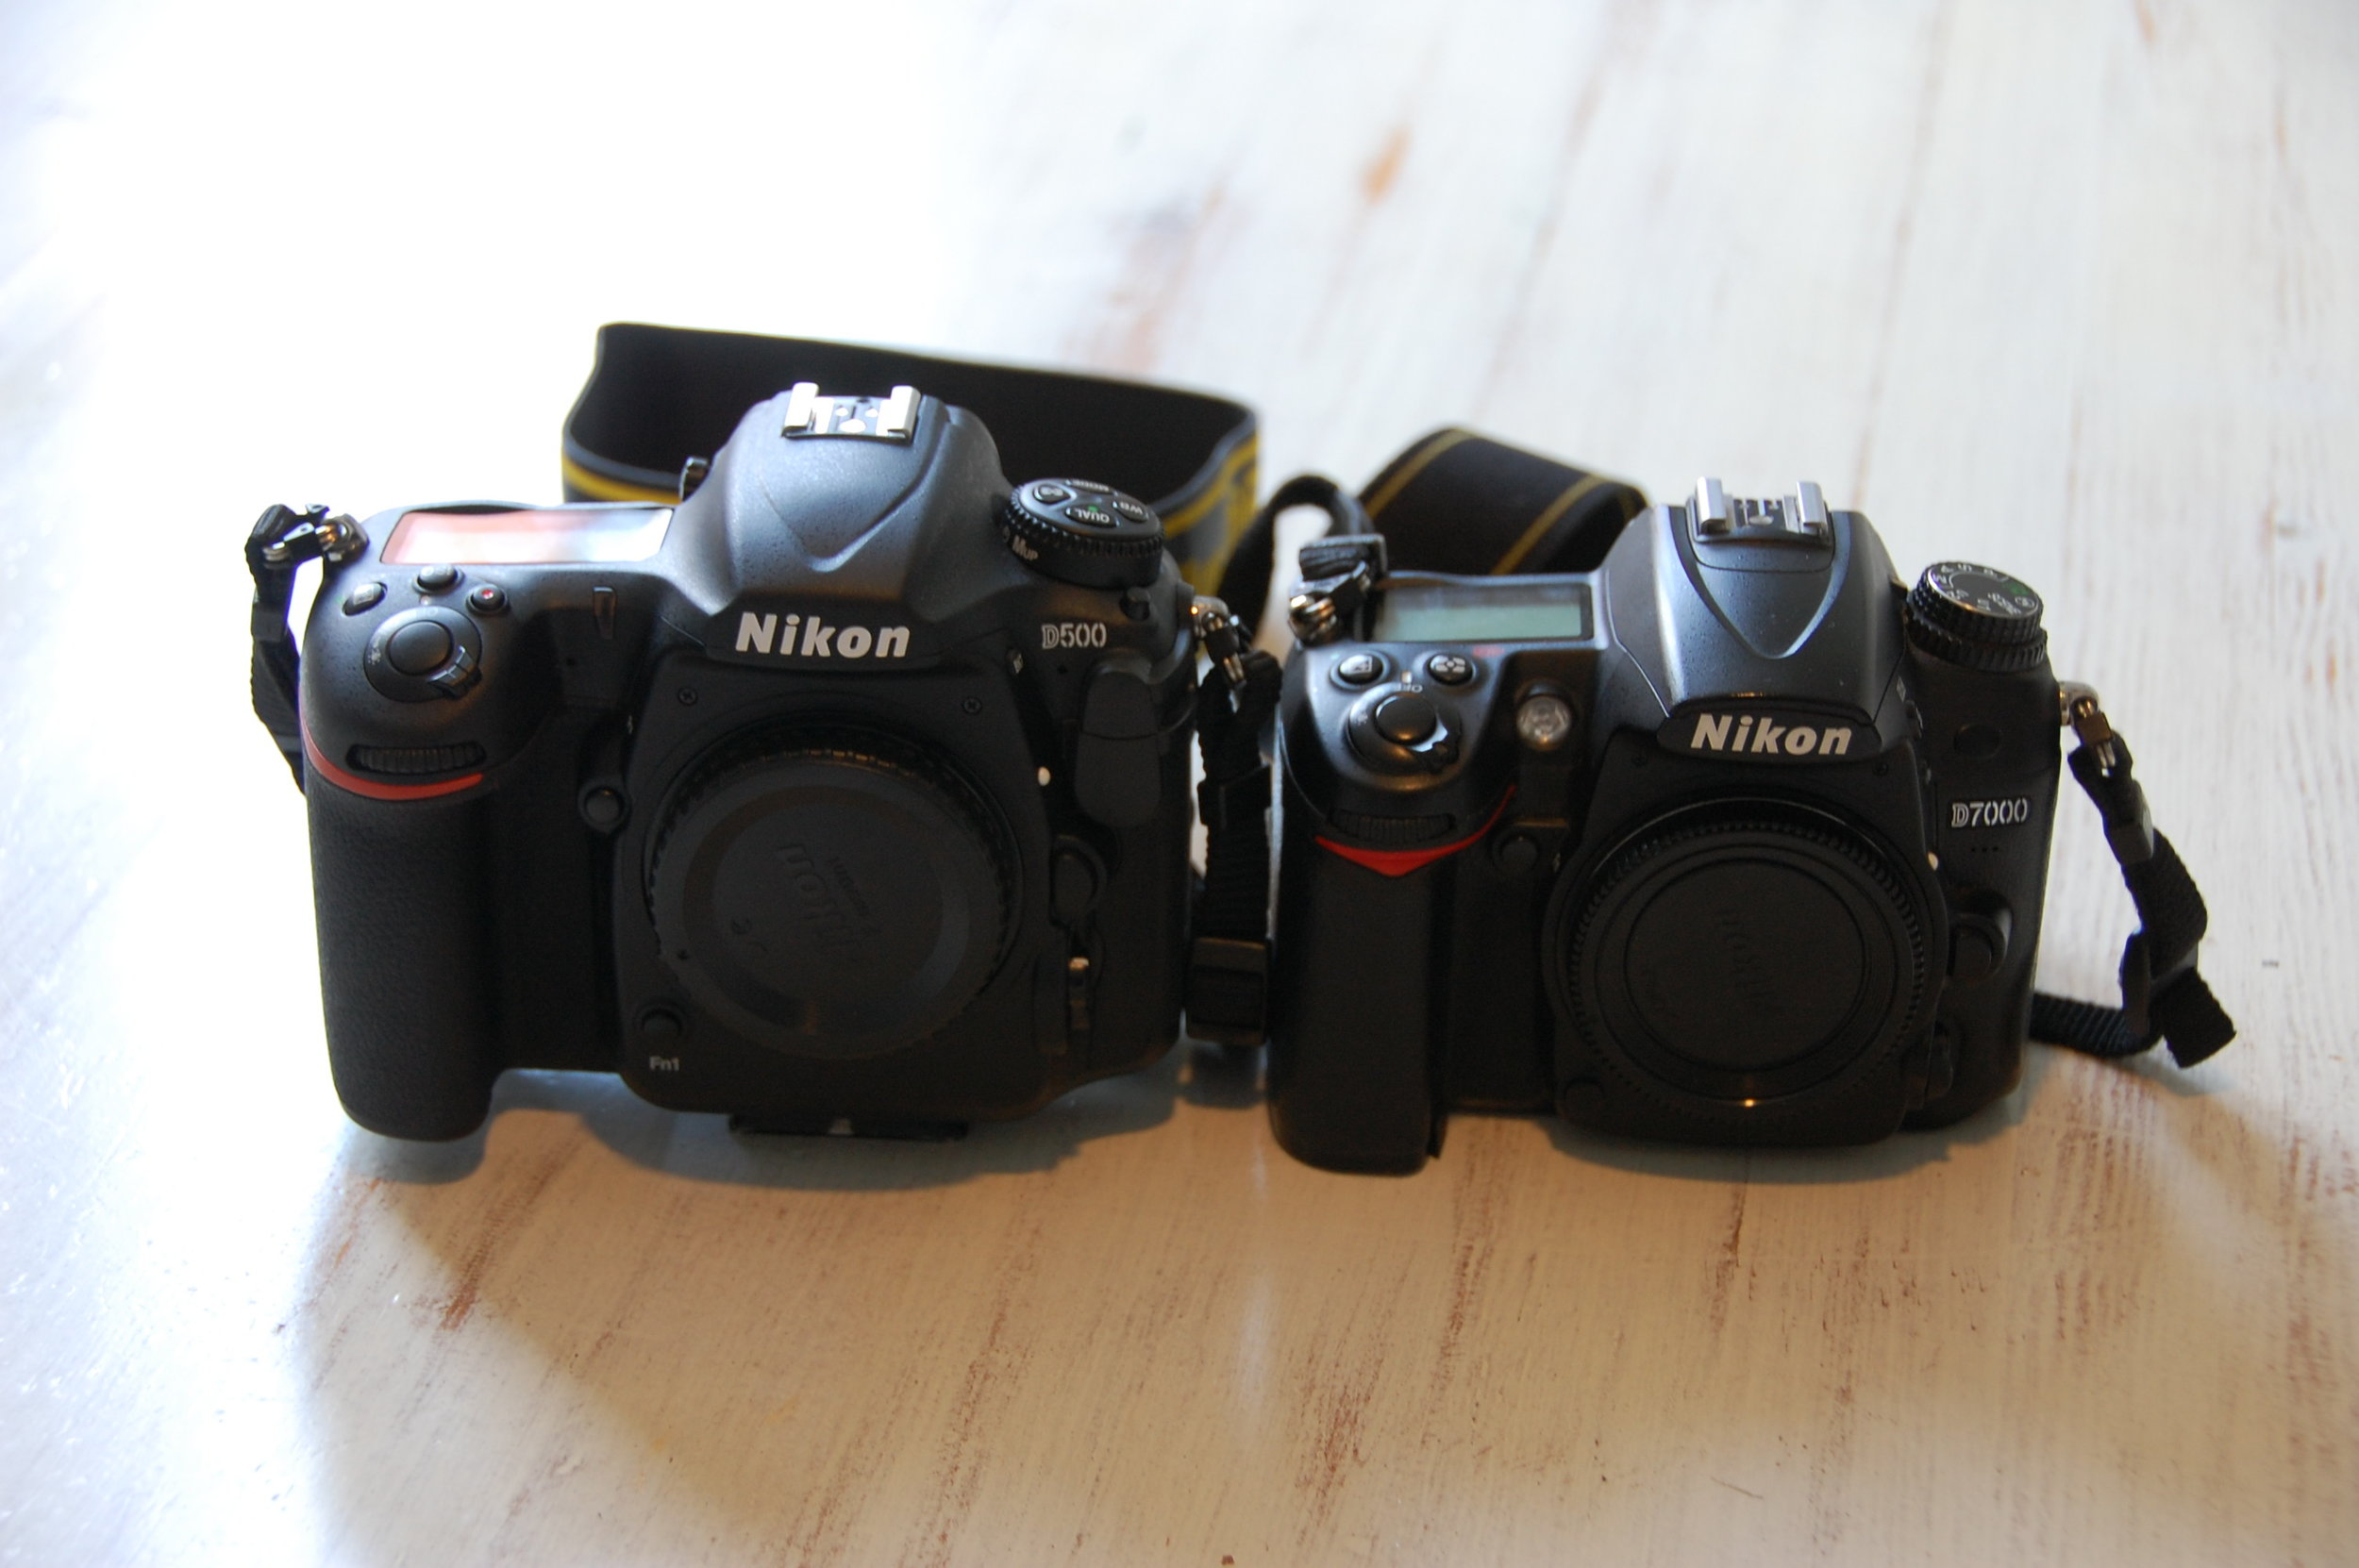 The Nikon D500 and the Nikon D7000 next to each other. Its obvious that the D500 is the bigger adult brother of the D7000. Both camera's are totally awesome.